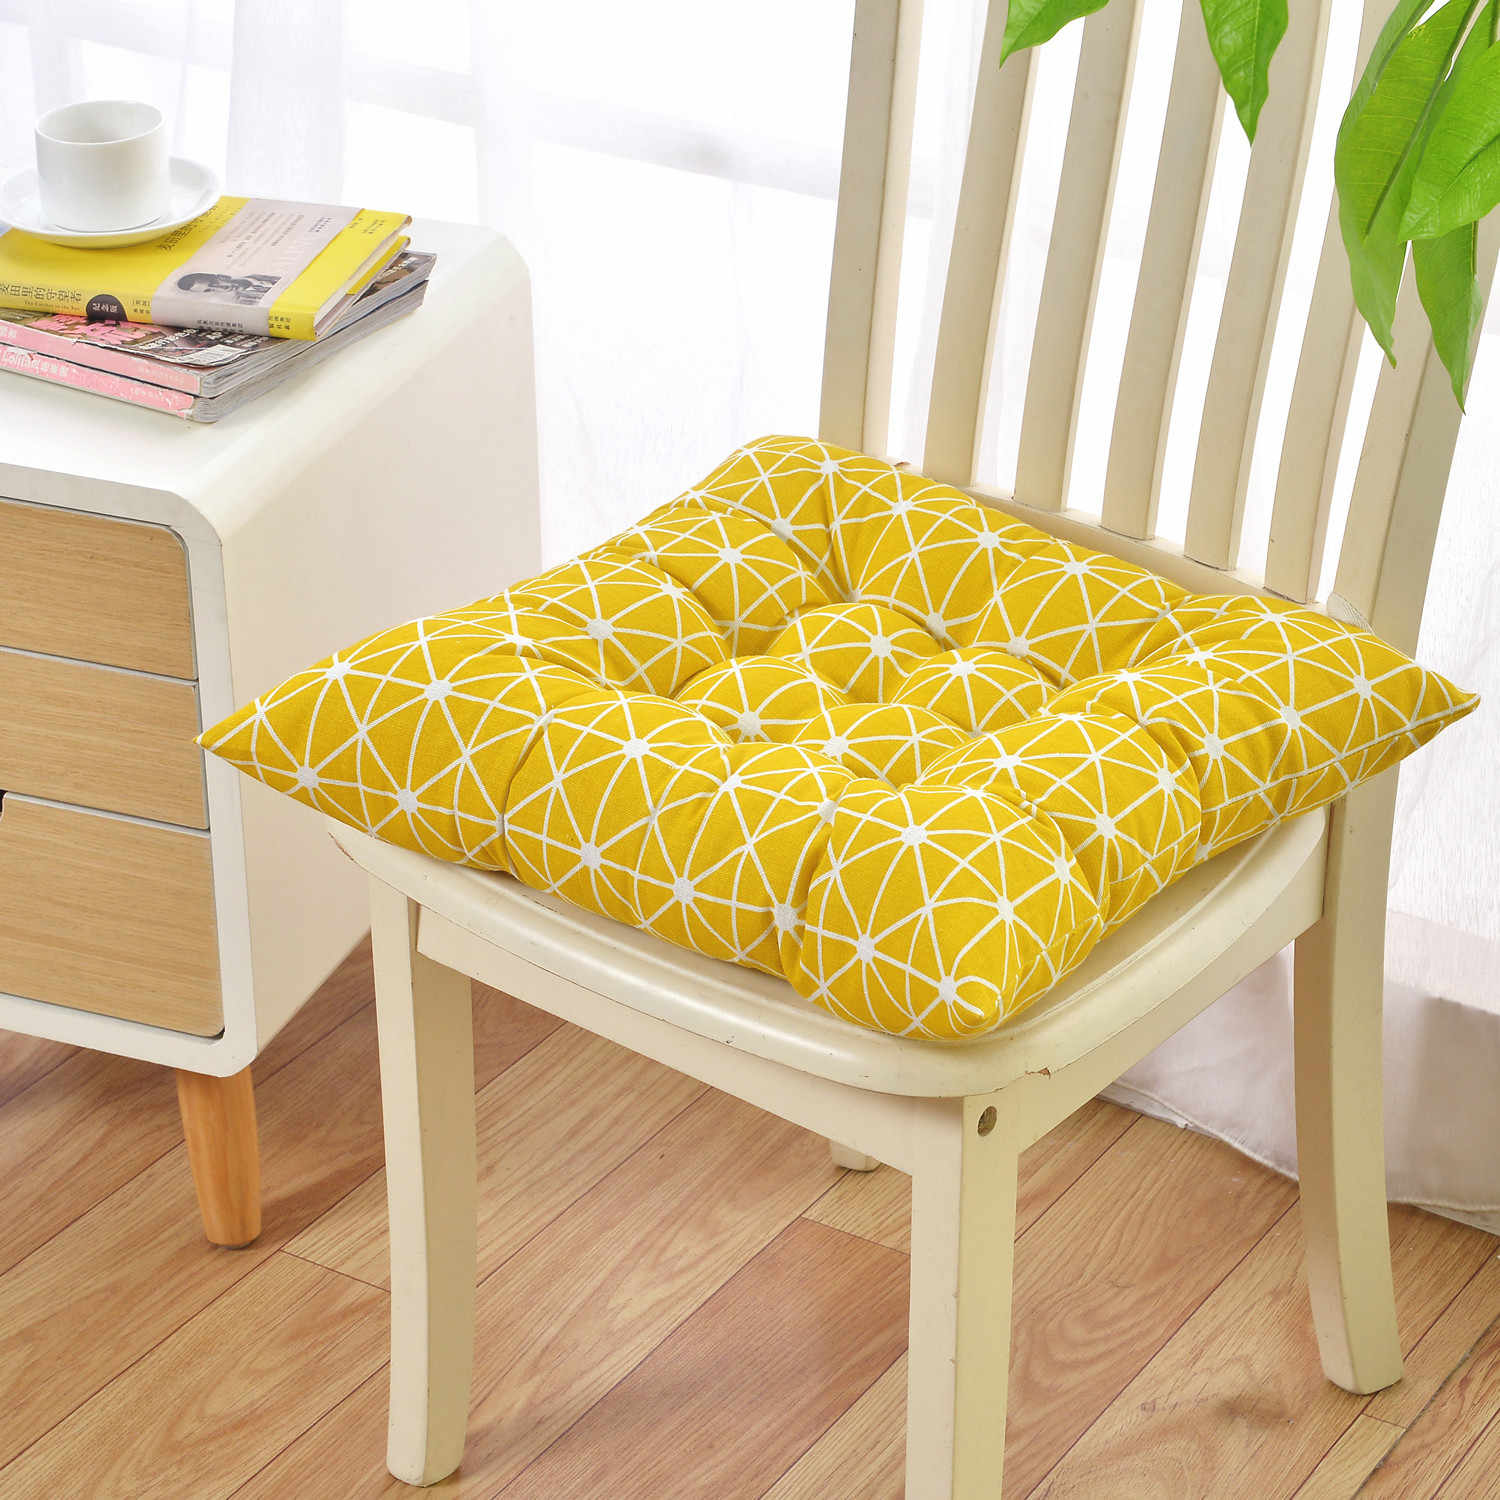 1 Seat Cushion 40x40cm For New Plain